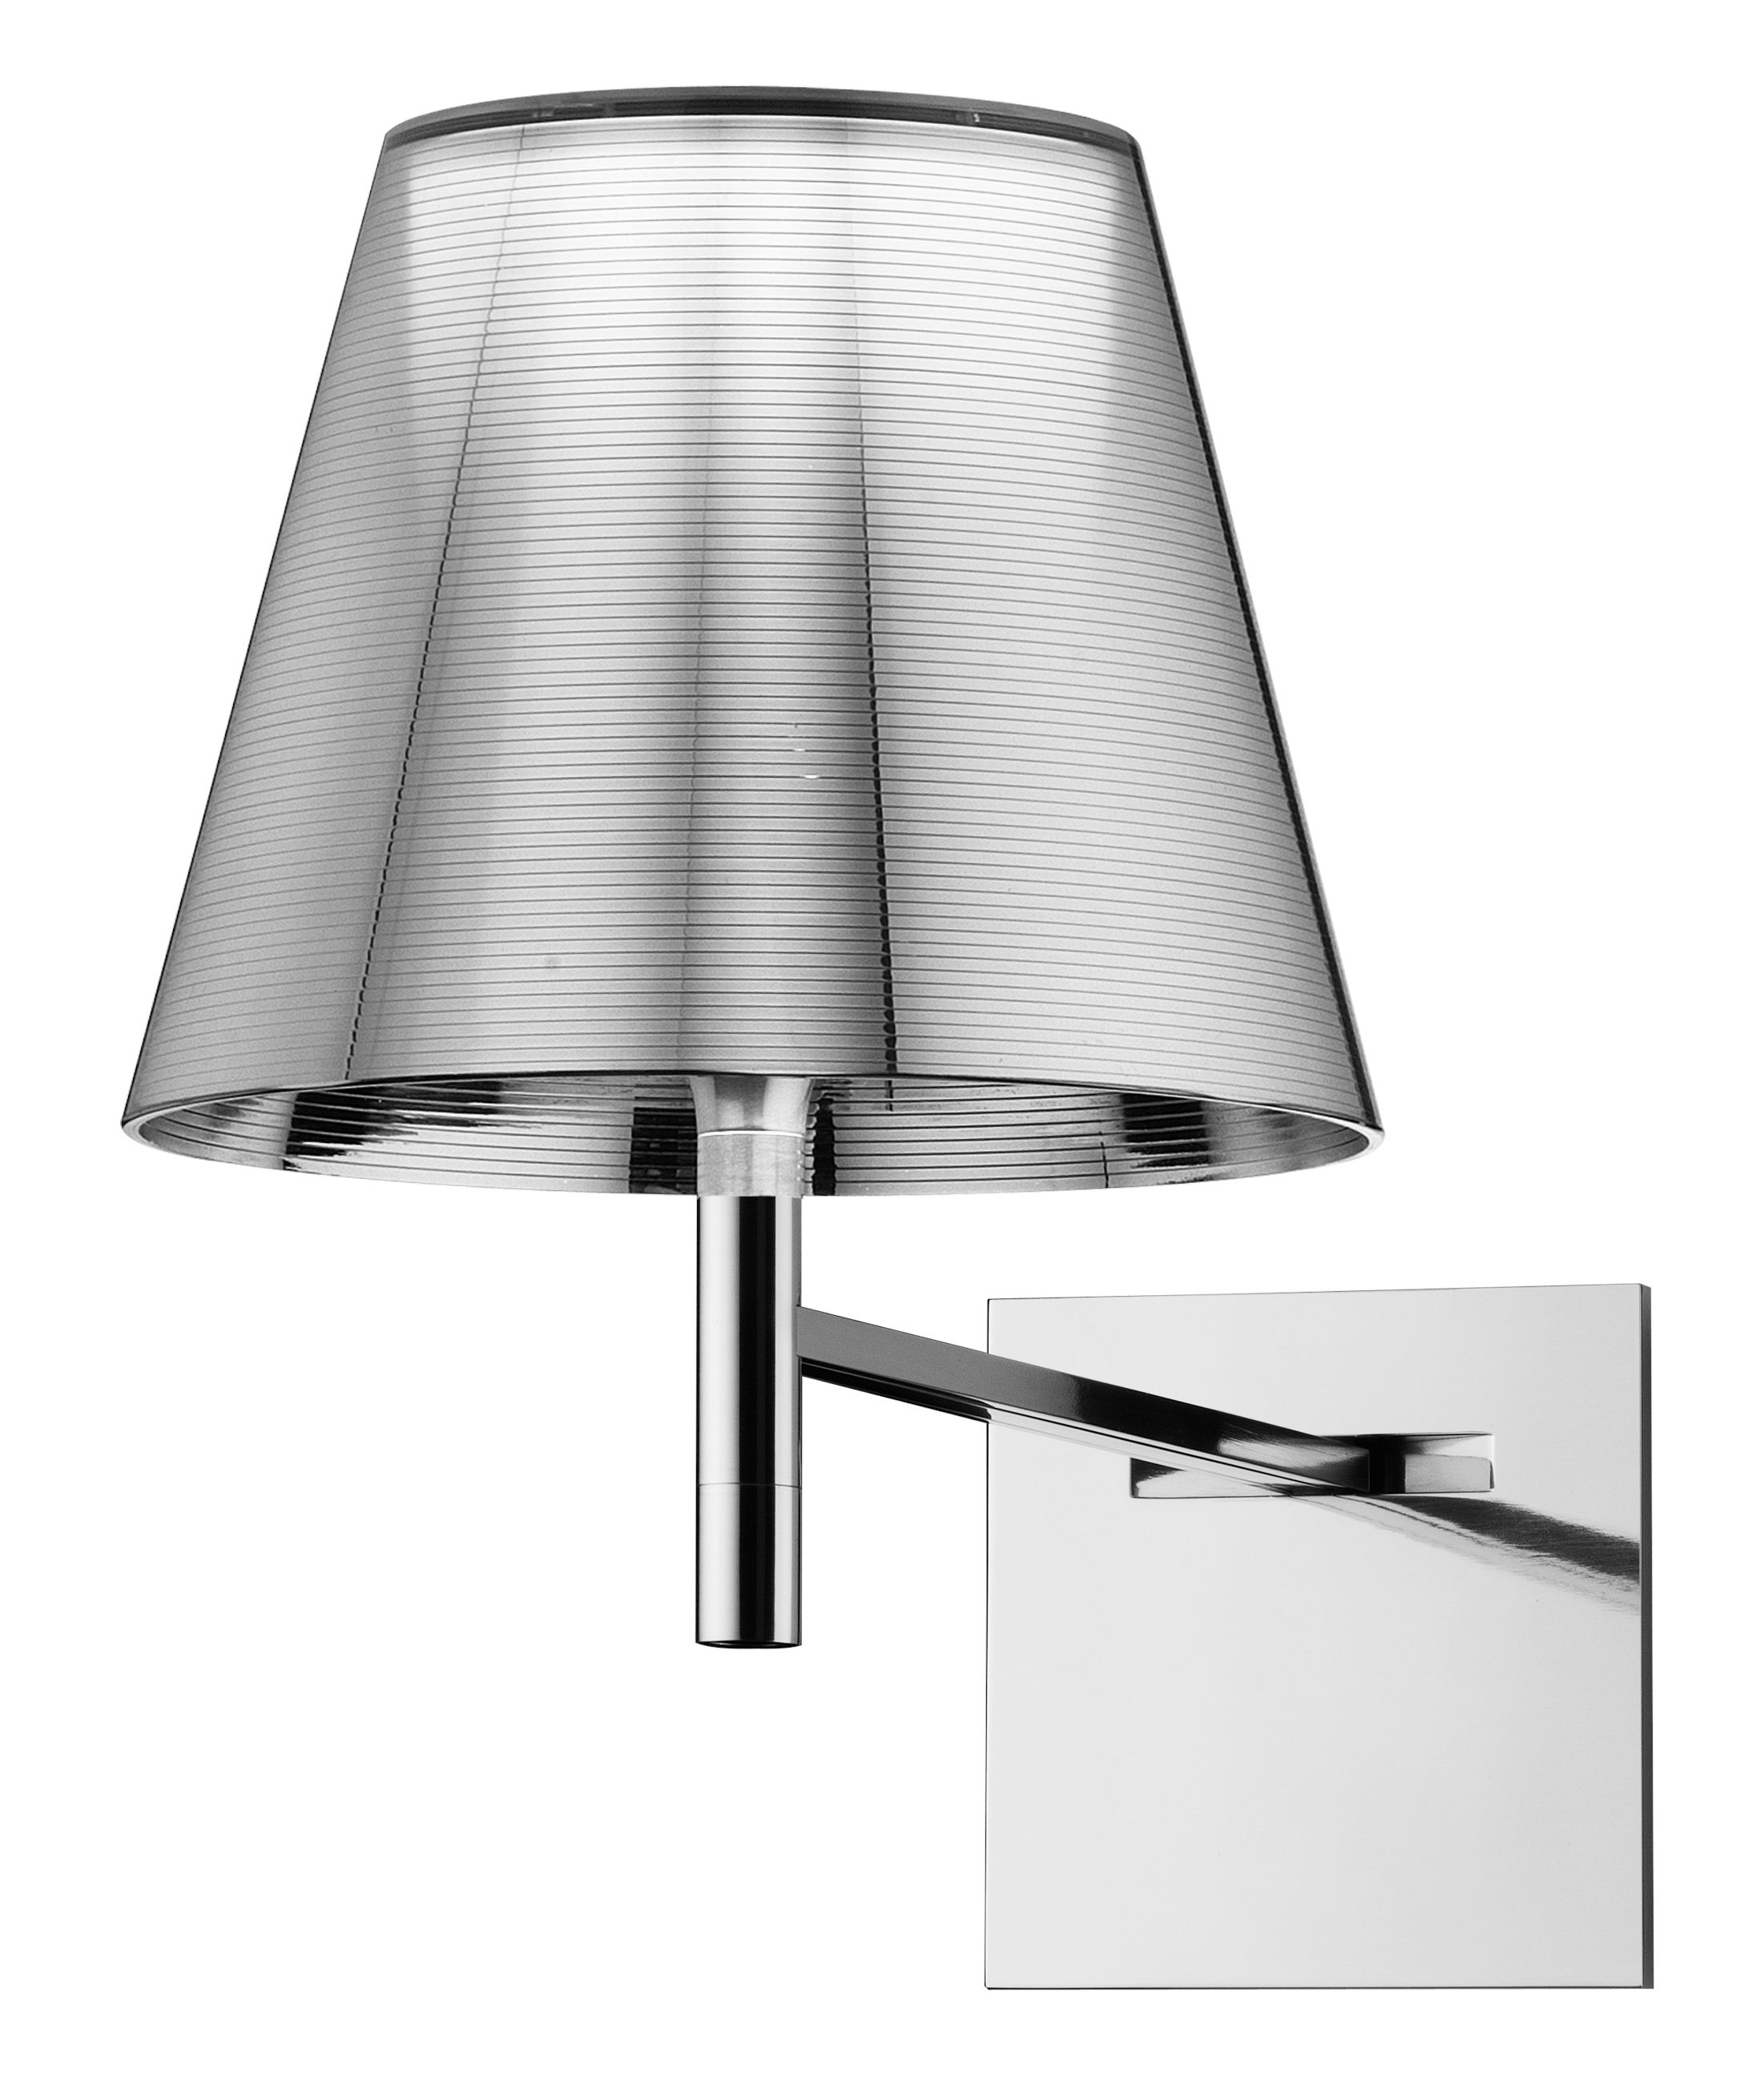 Lighting - Wall Lights - K Tribe W Wall light by Flos - Metal-coated silver - PMMA, Polished aluminium